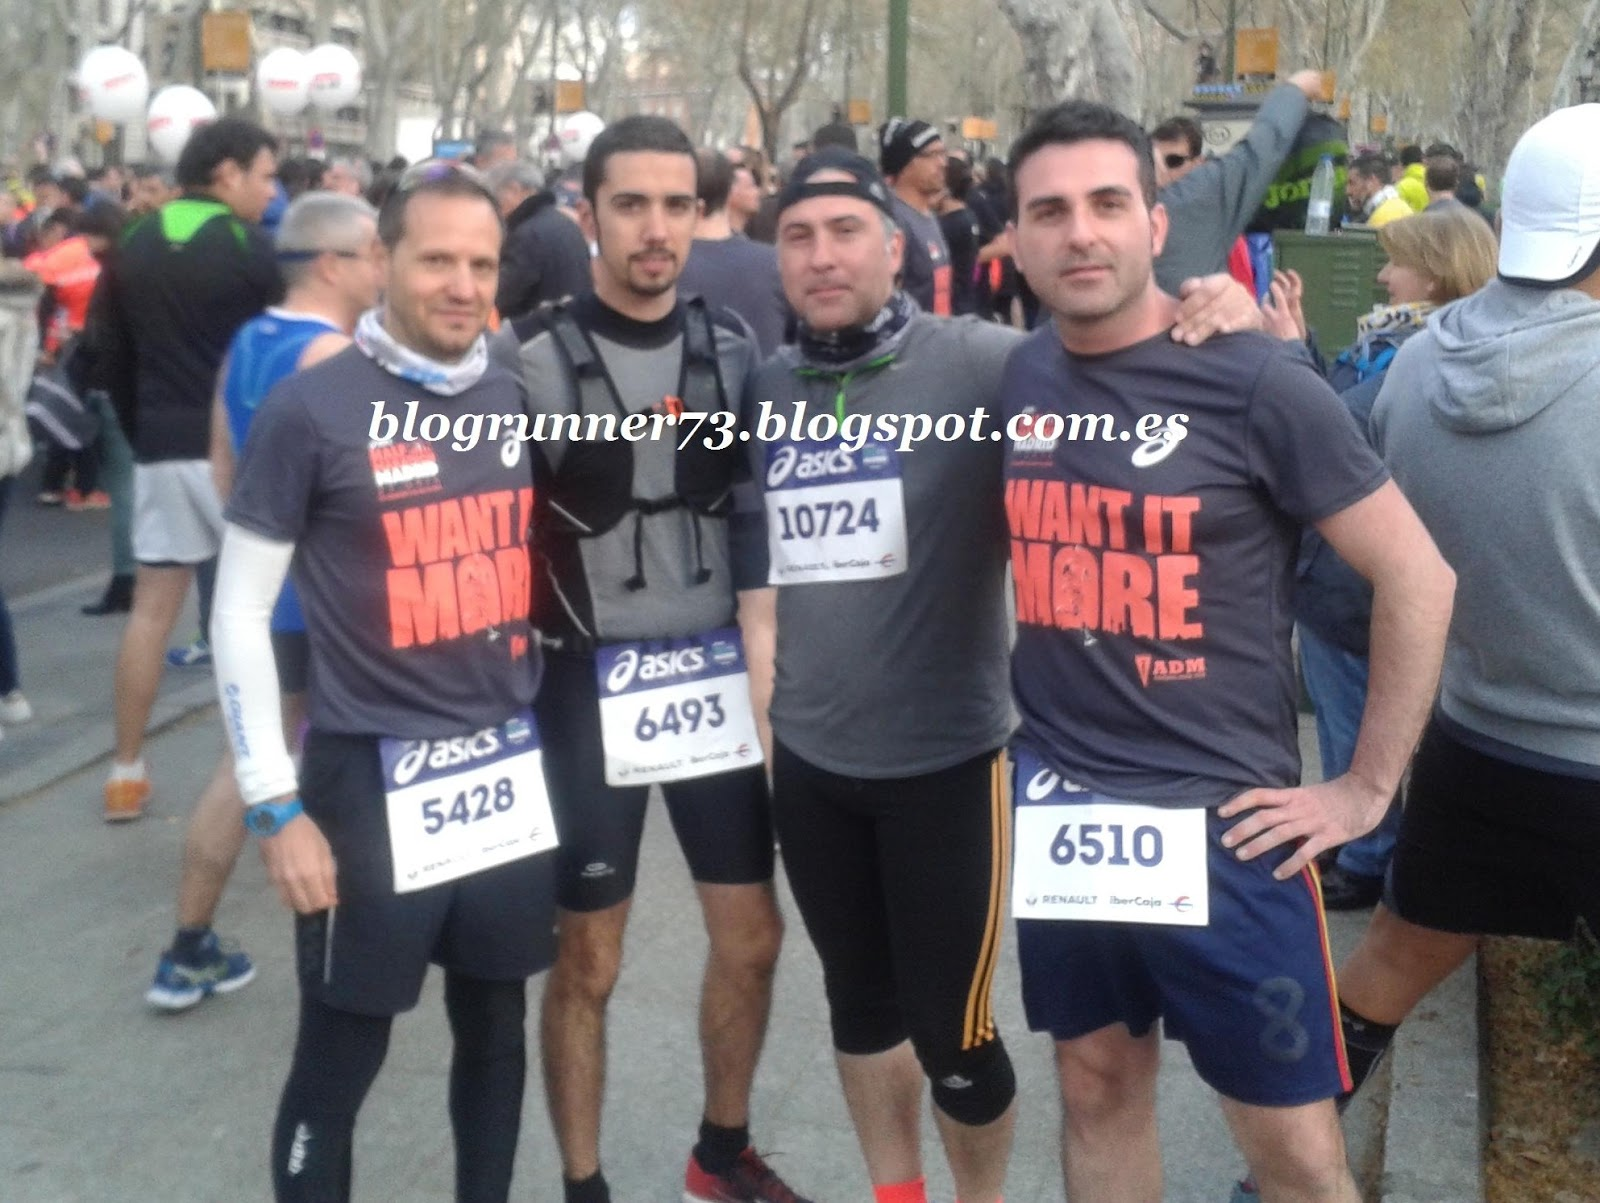 media maraton asics 2016 madrid